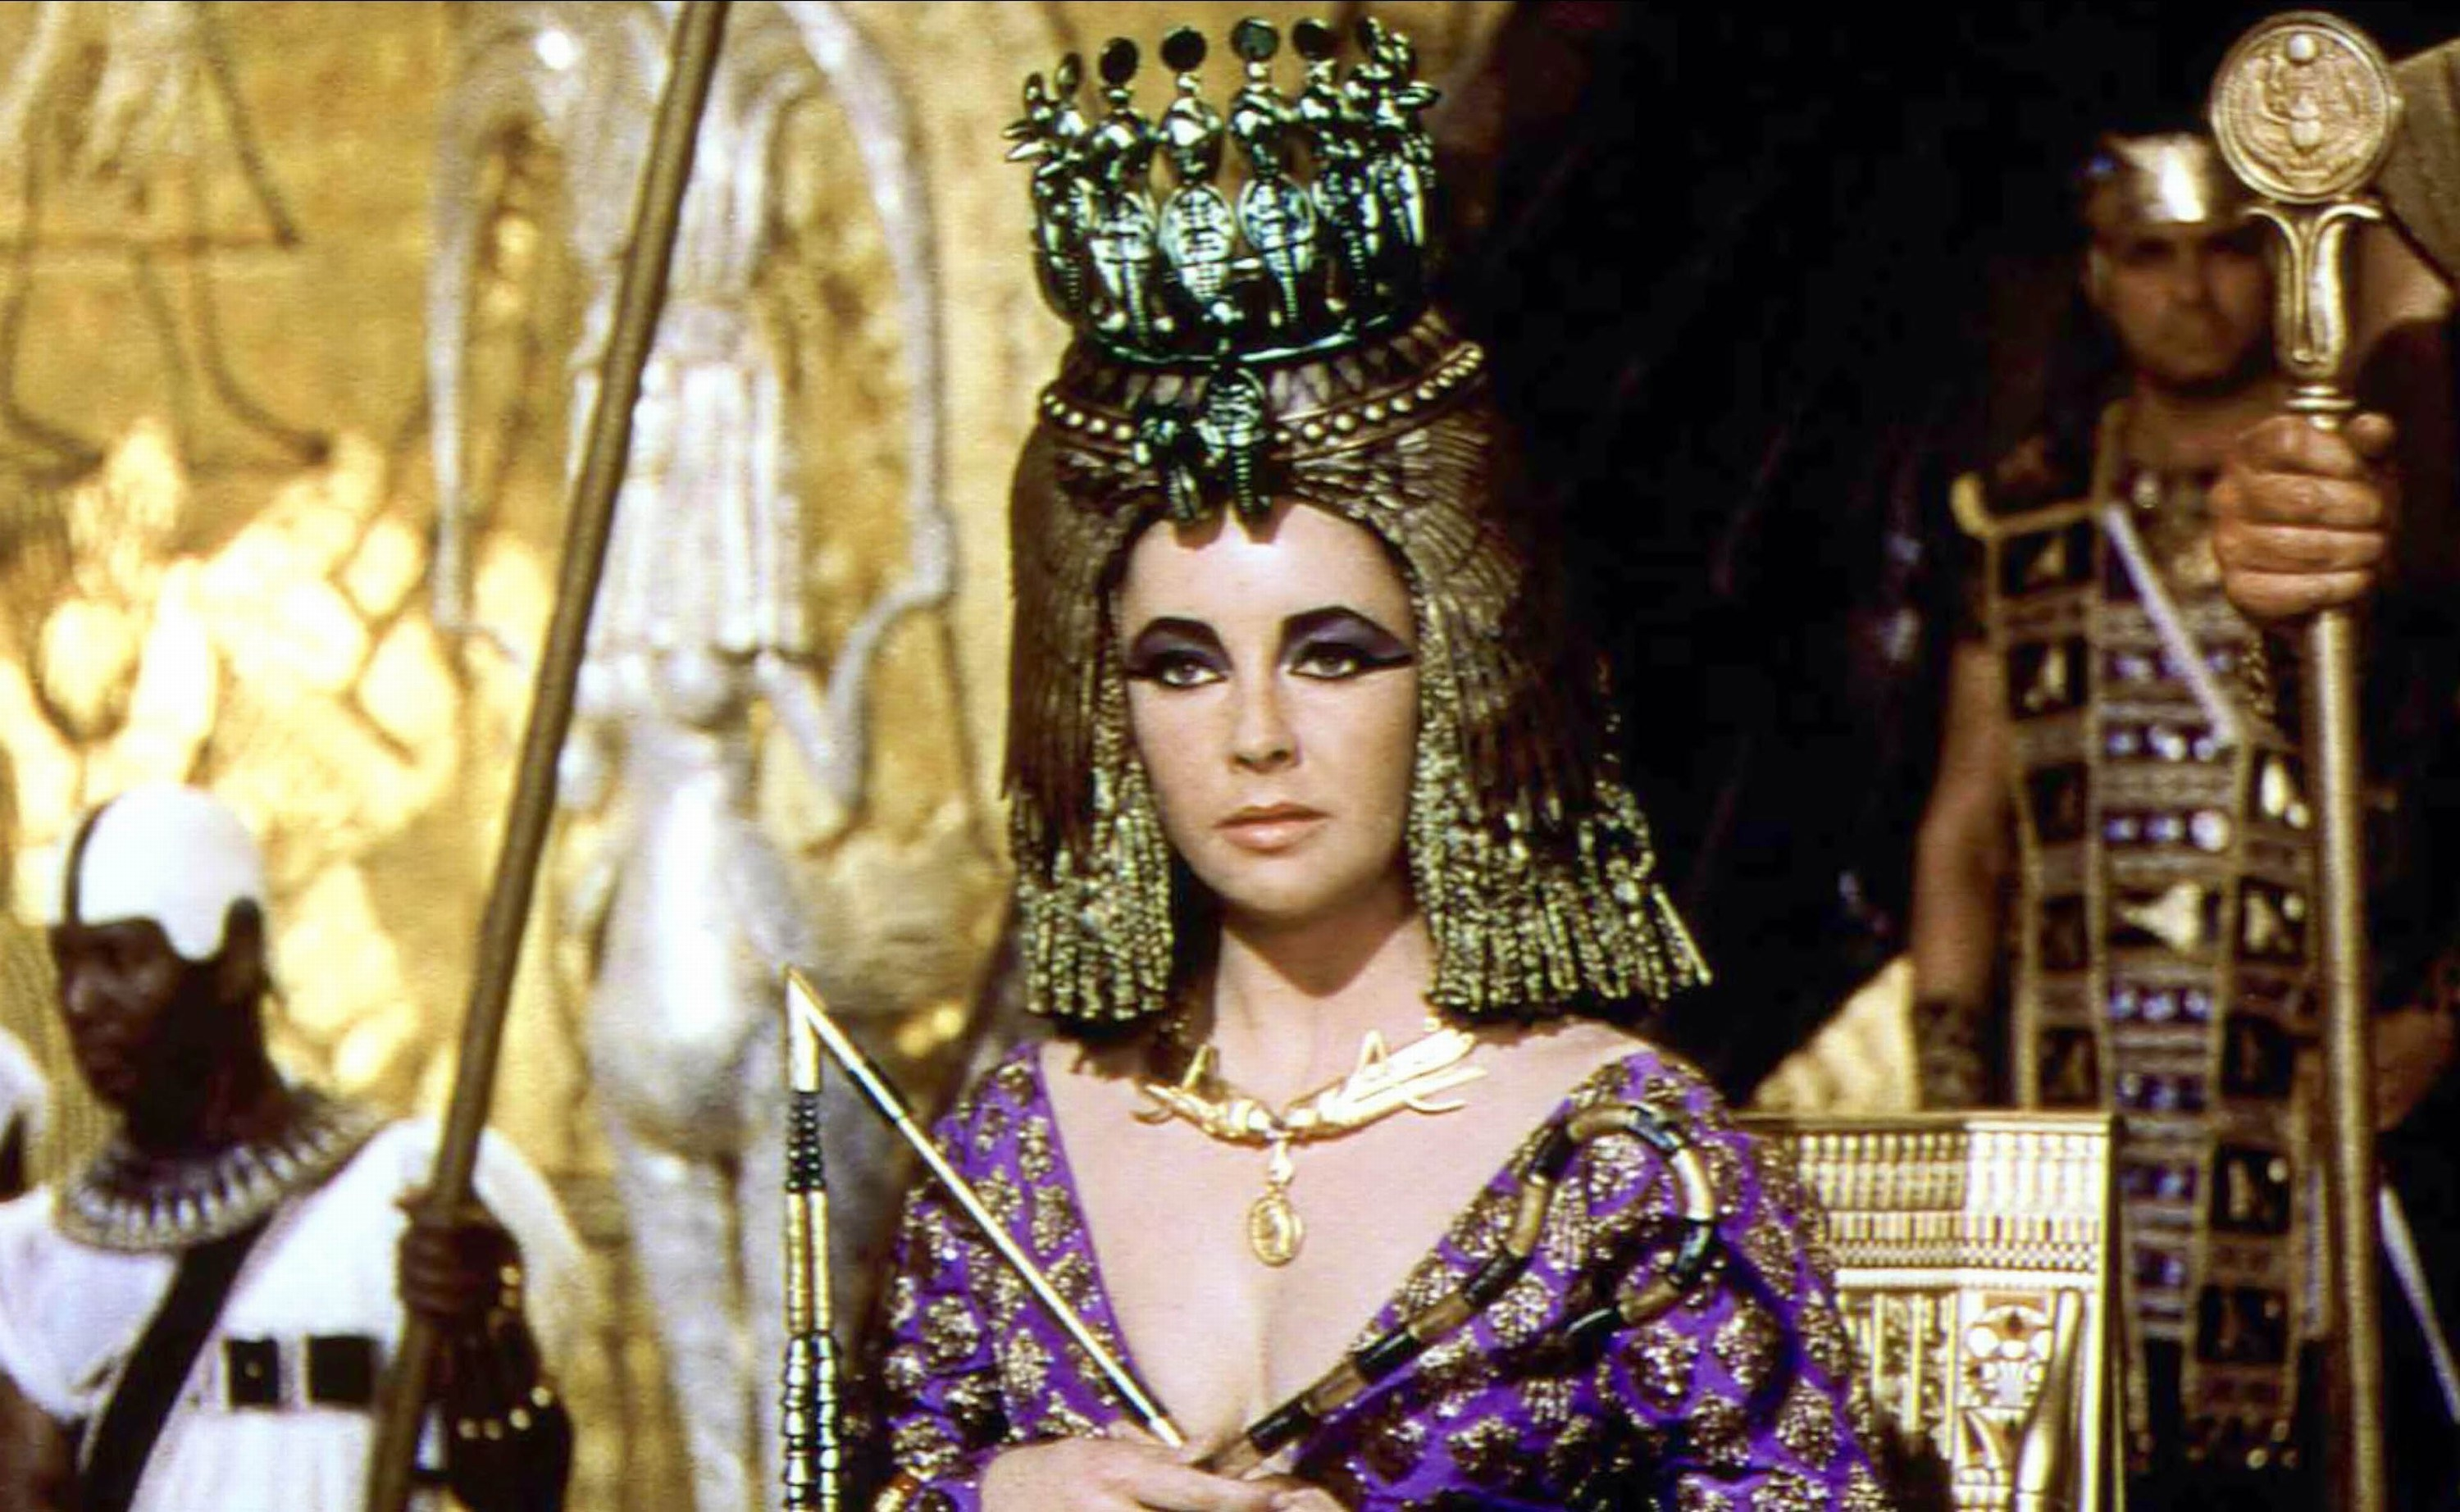 Elizabeth Taylor as Cleopatra, dressed in jewel-toned garbs and a gold headdress.